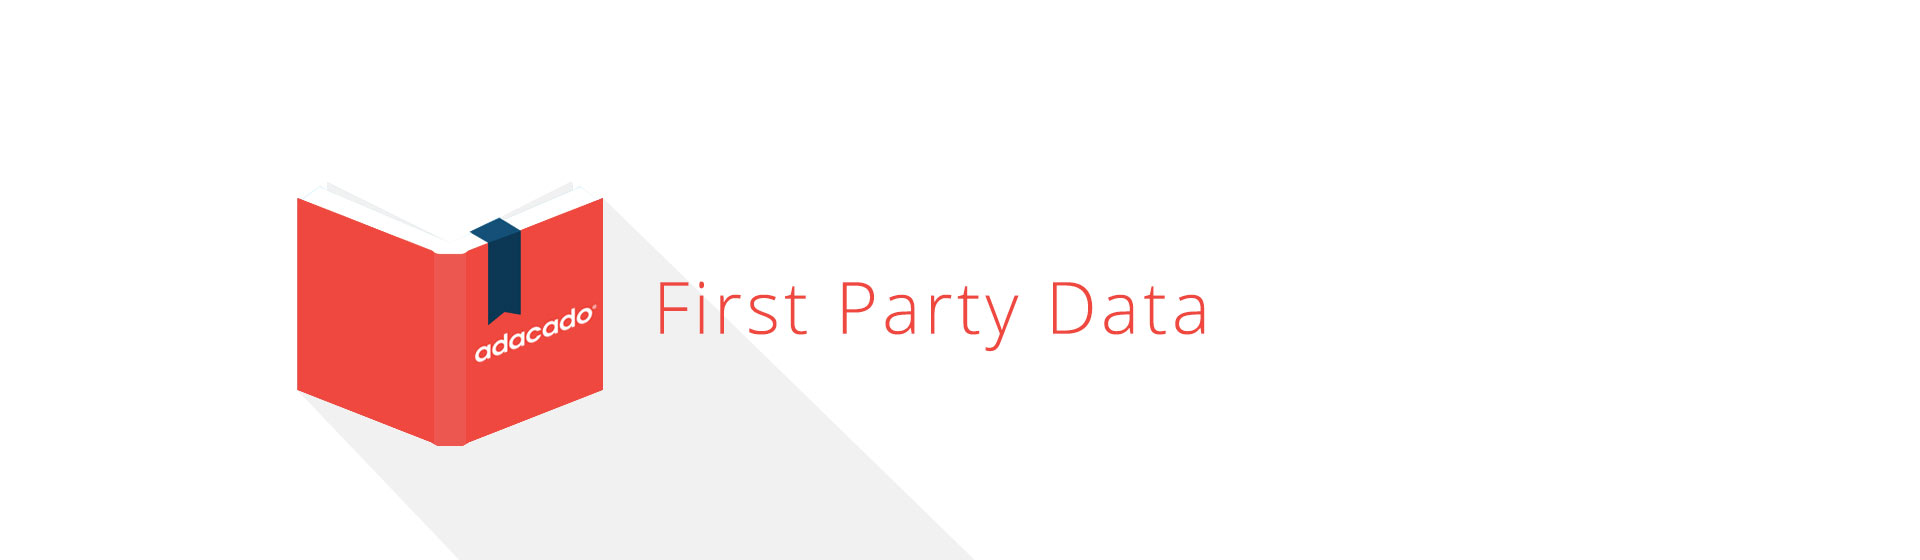 first-party data